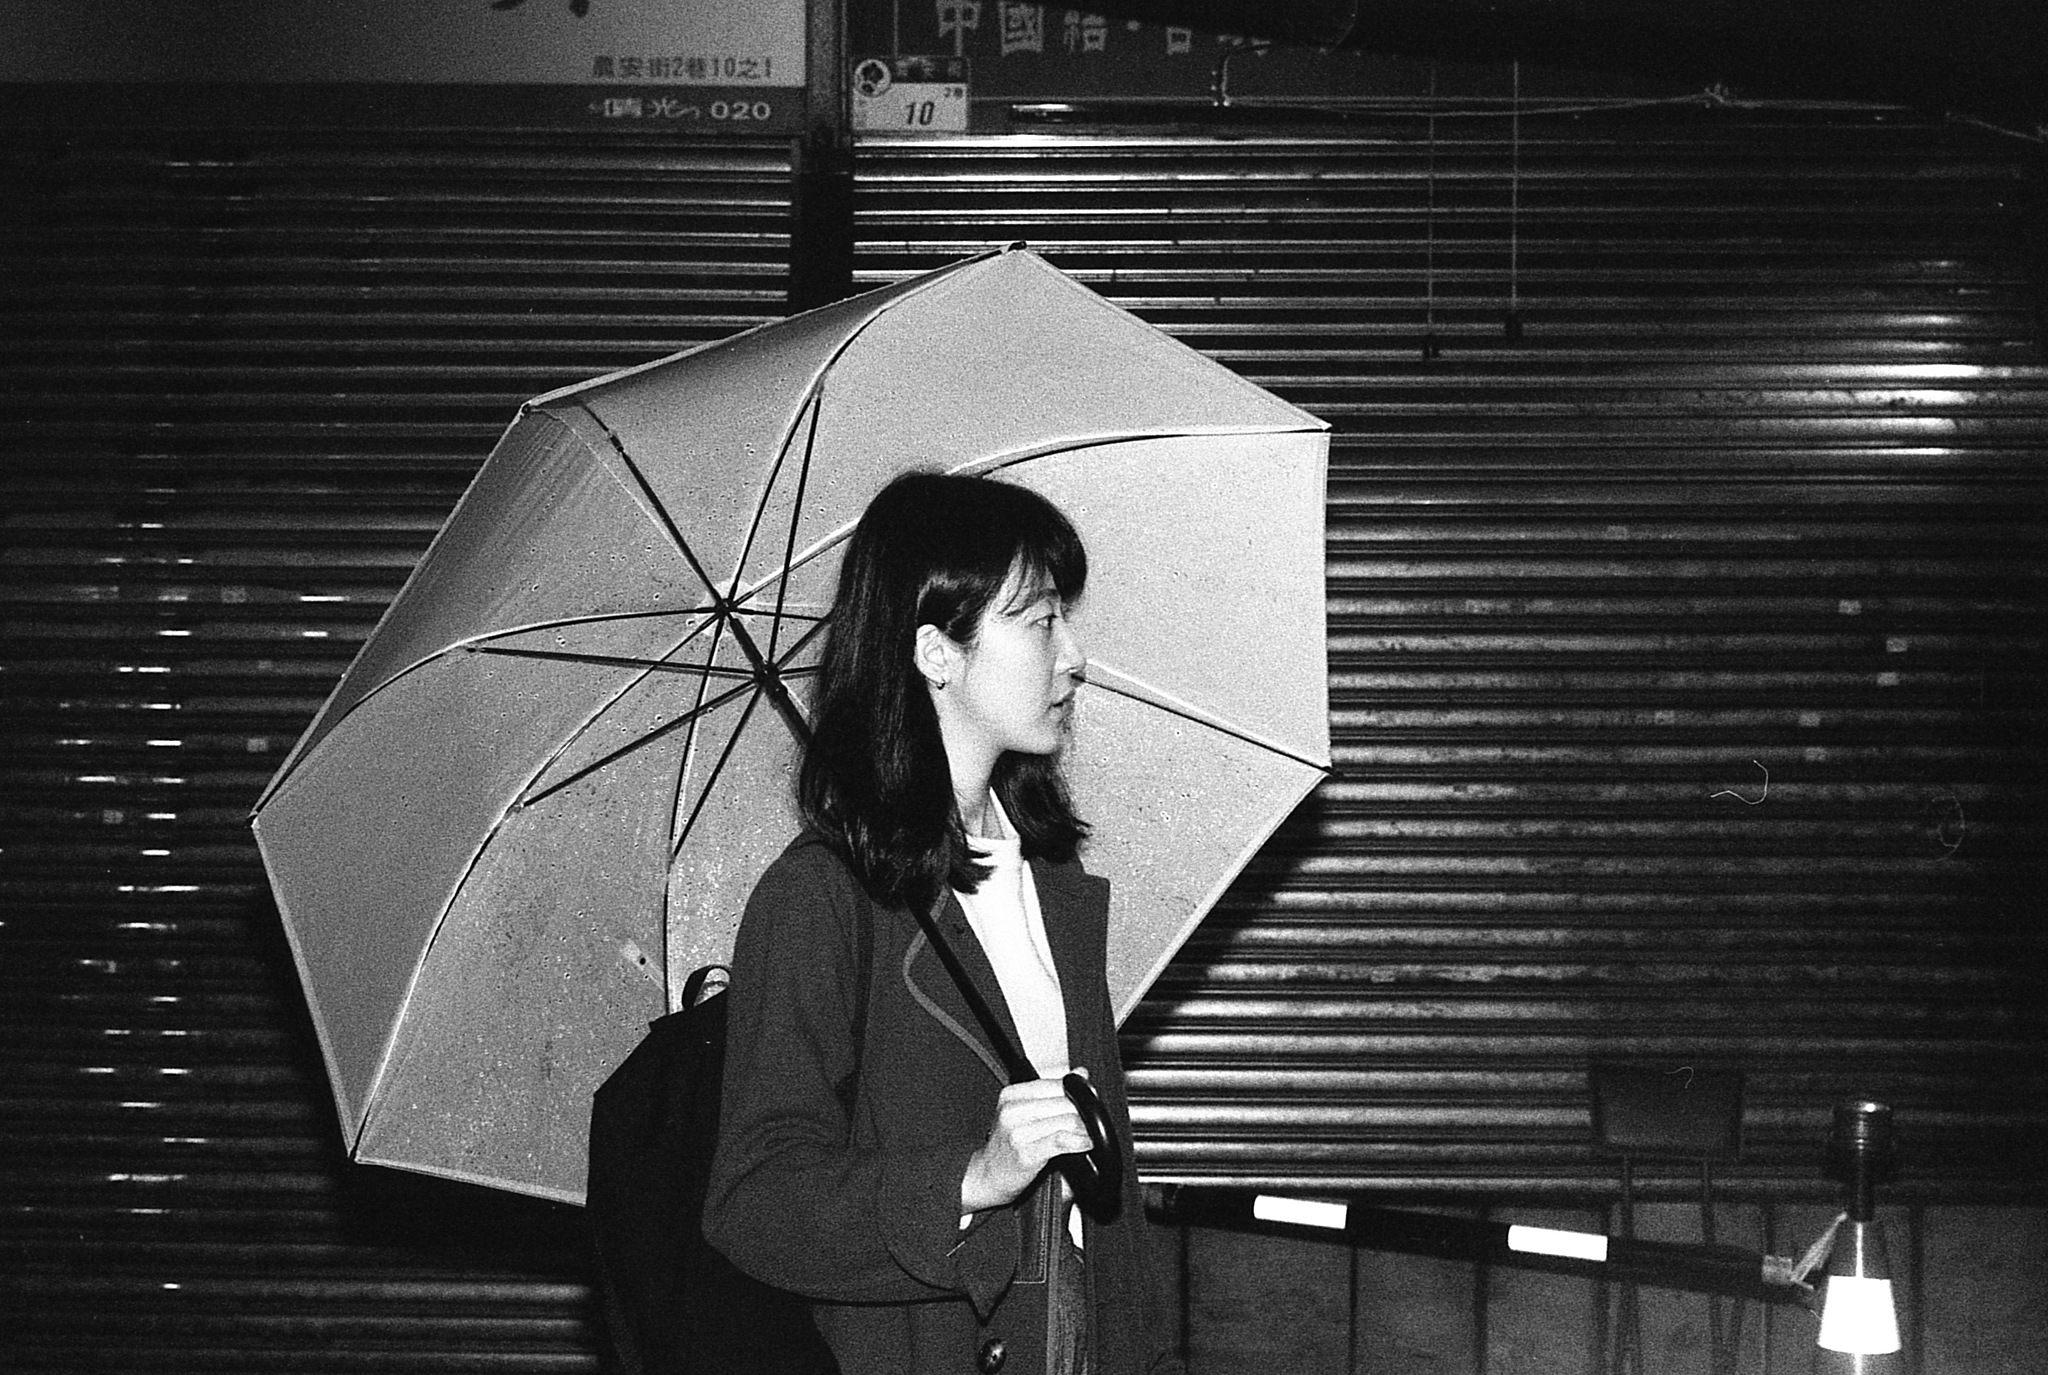 Umbrella for the flash light  by TOF_film